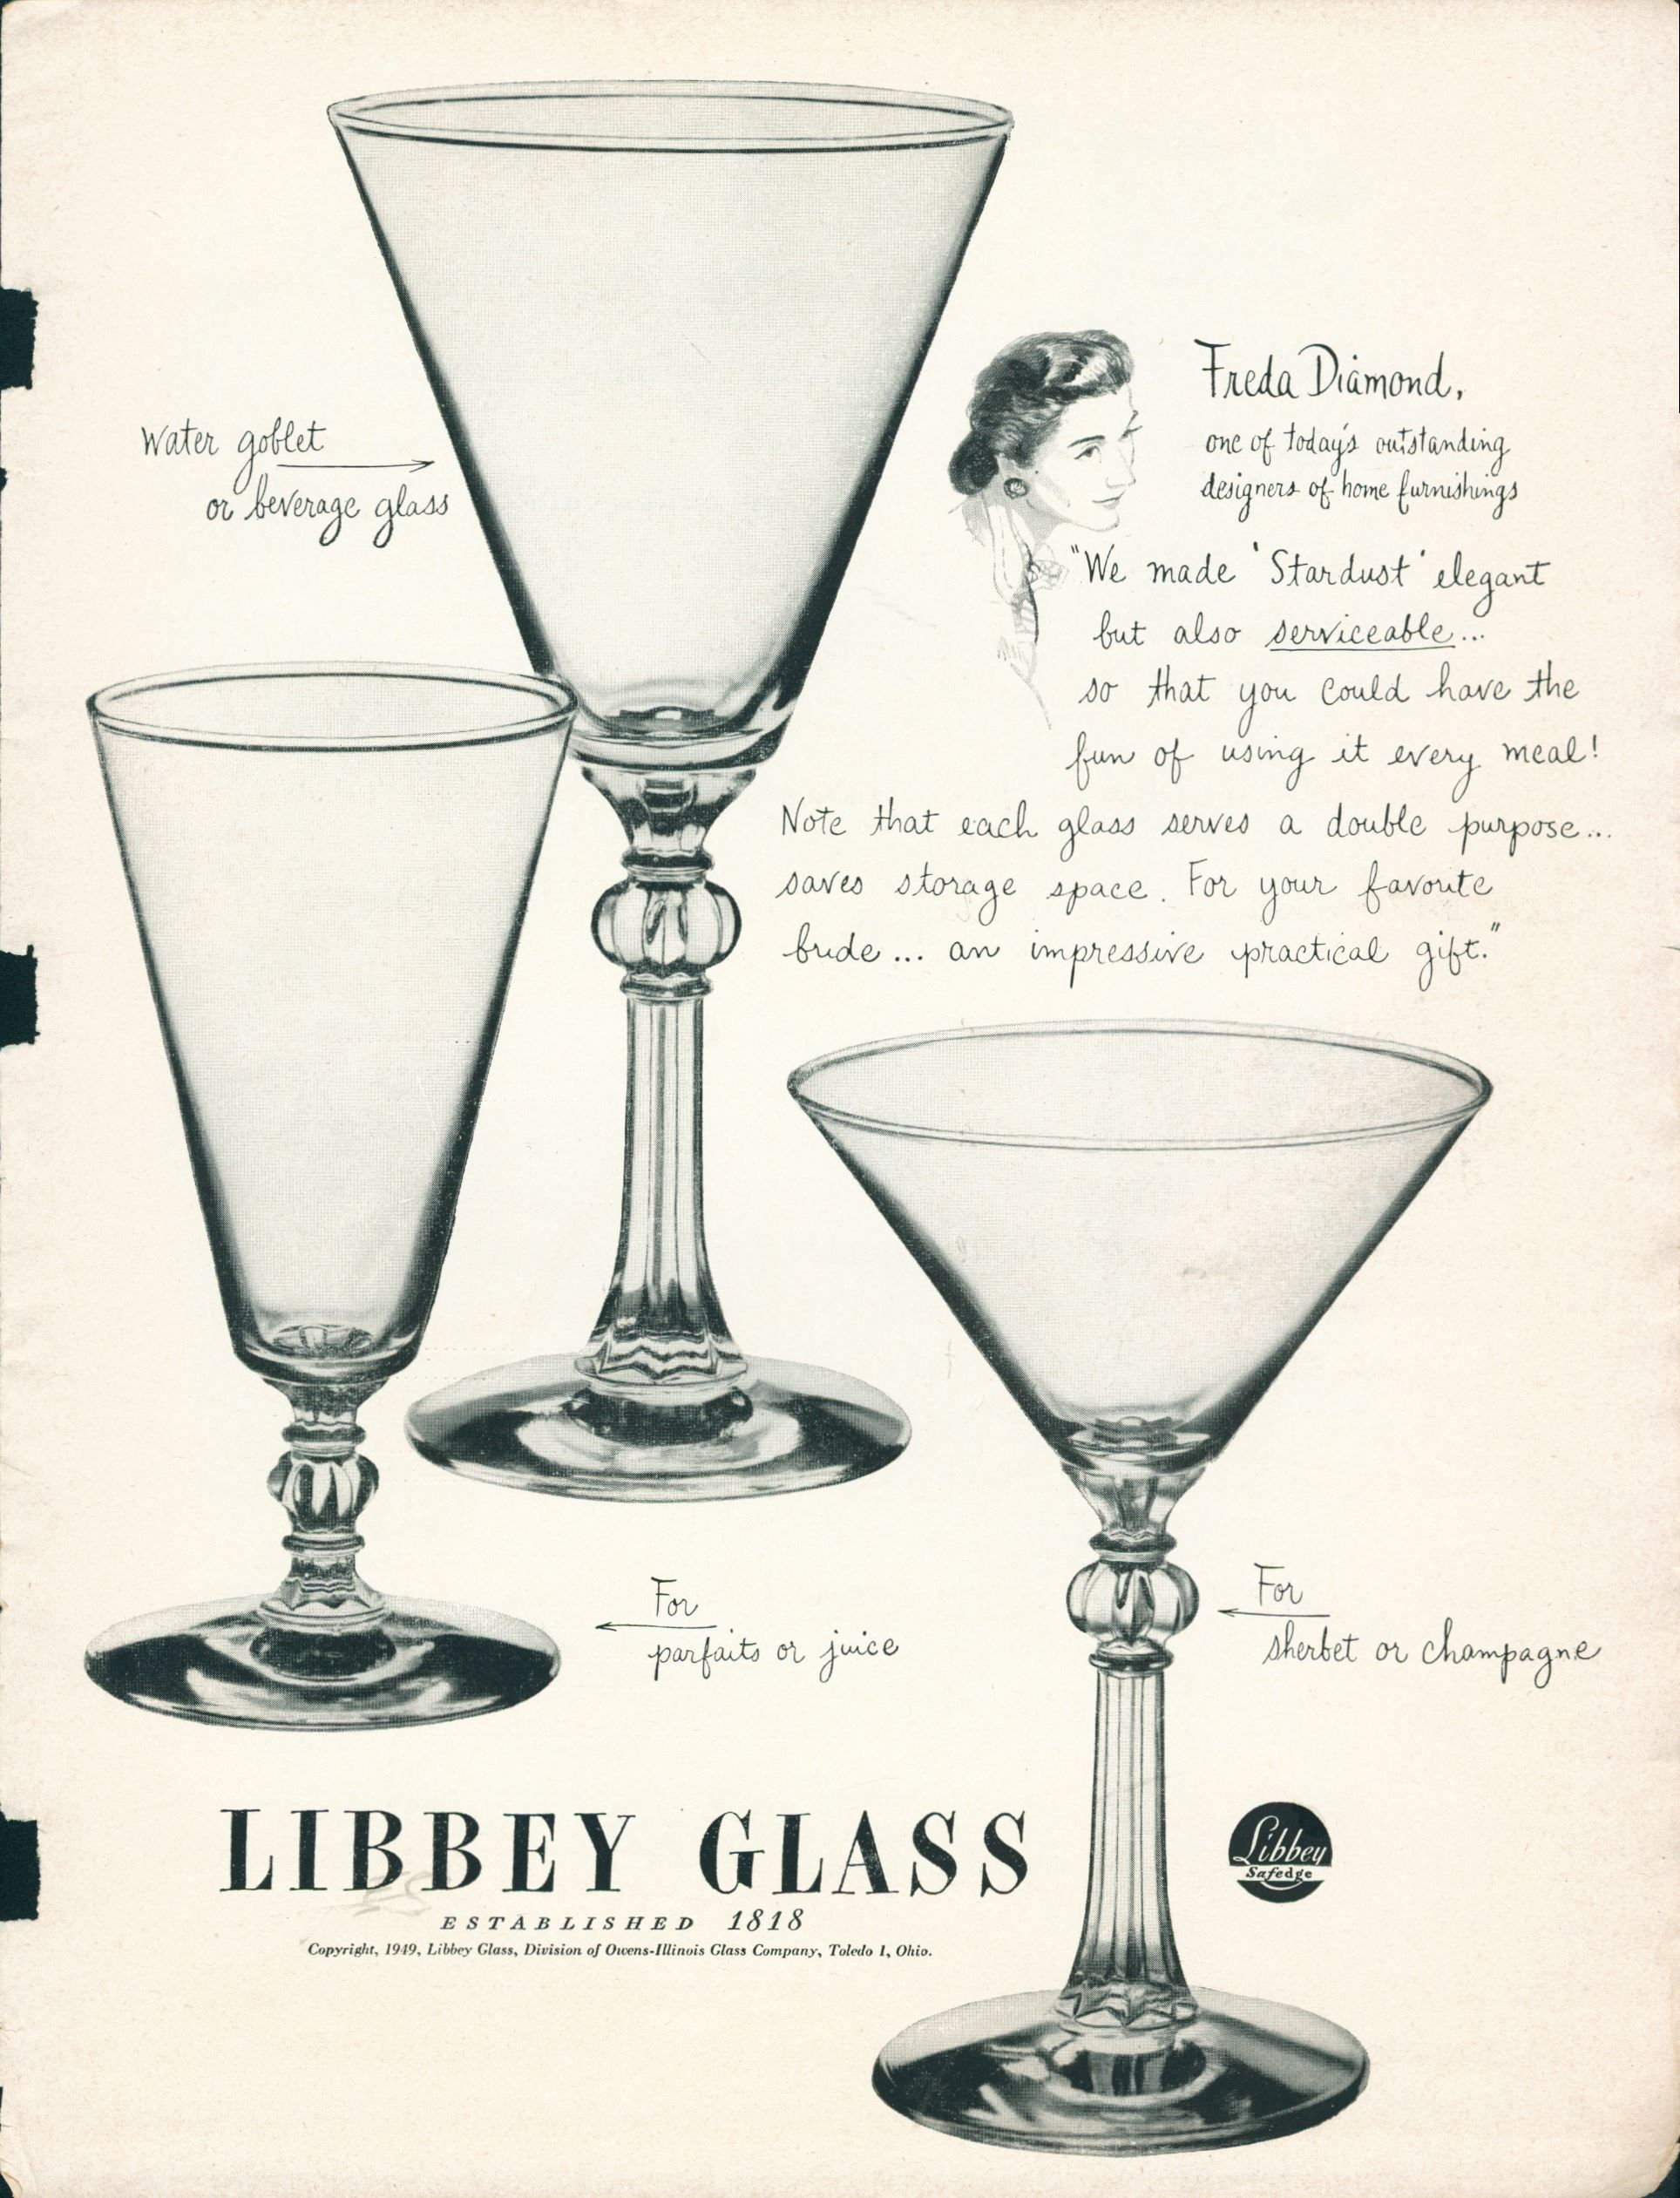 Ad with image of designer and glassware